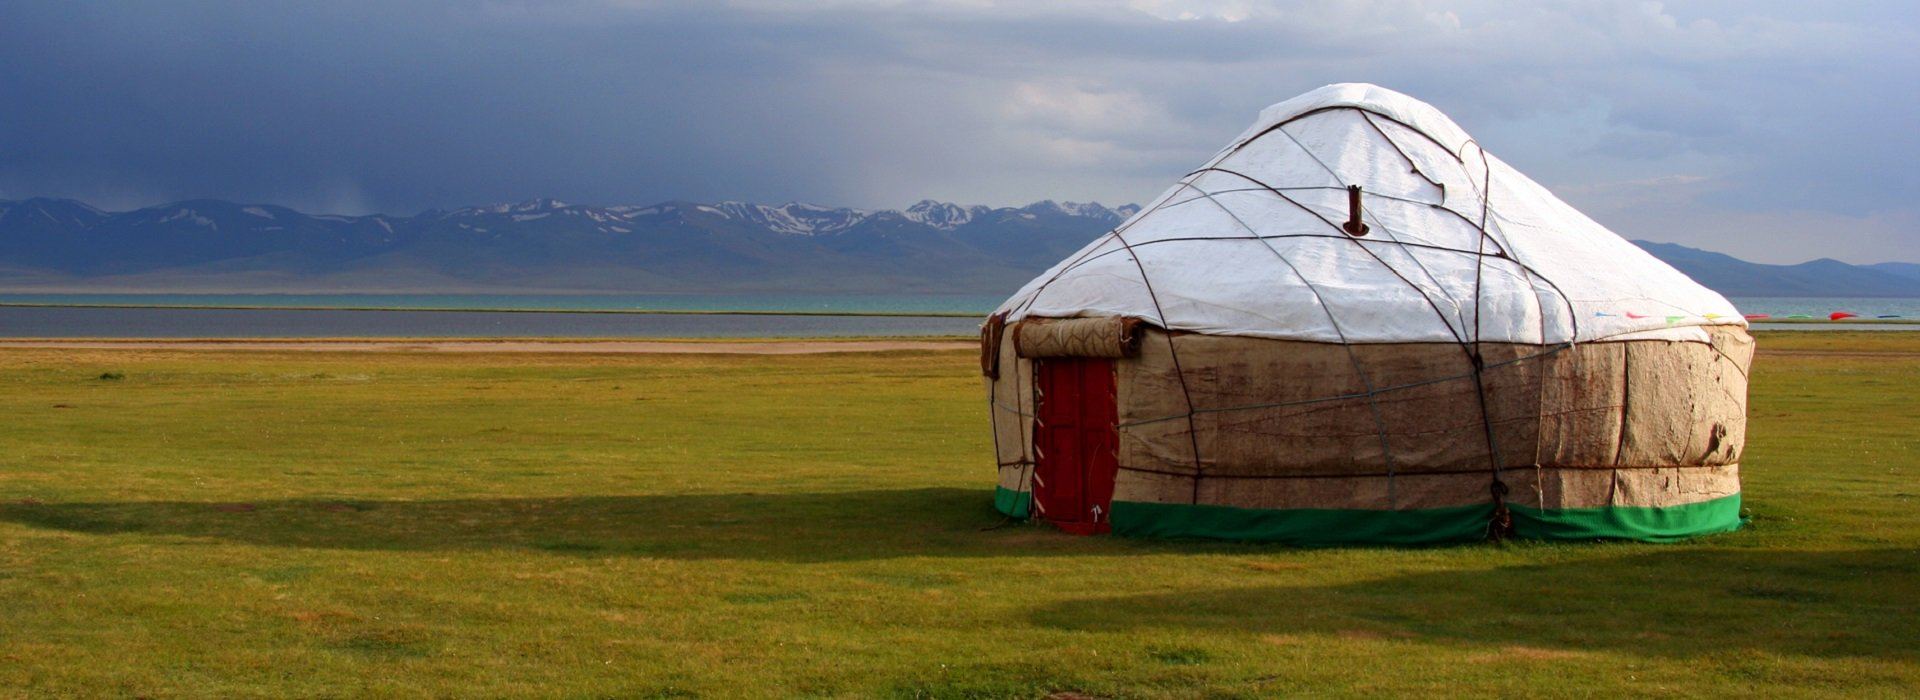 traditional_yurt_in_kyrgyzstan